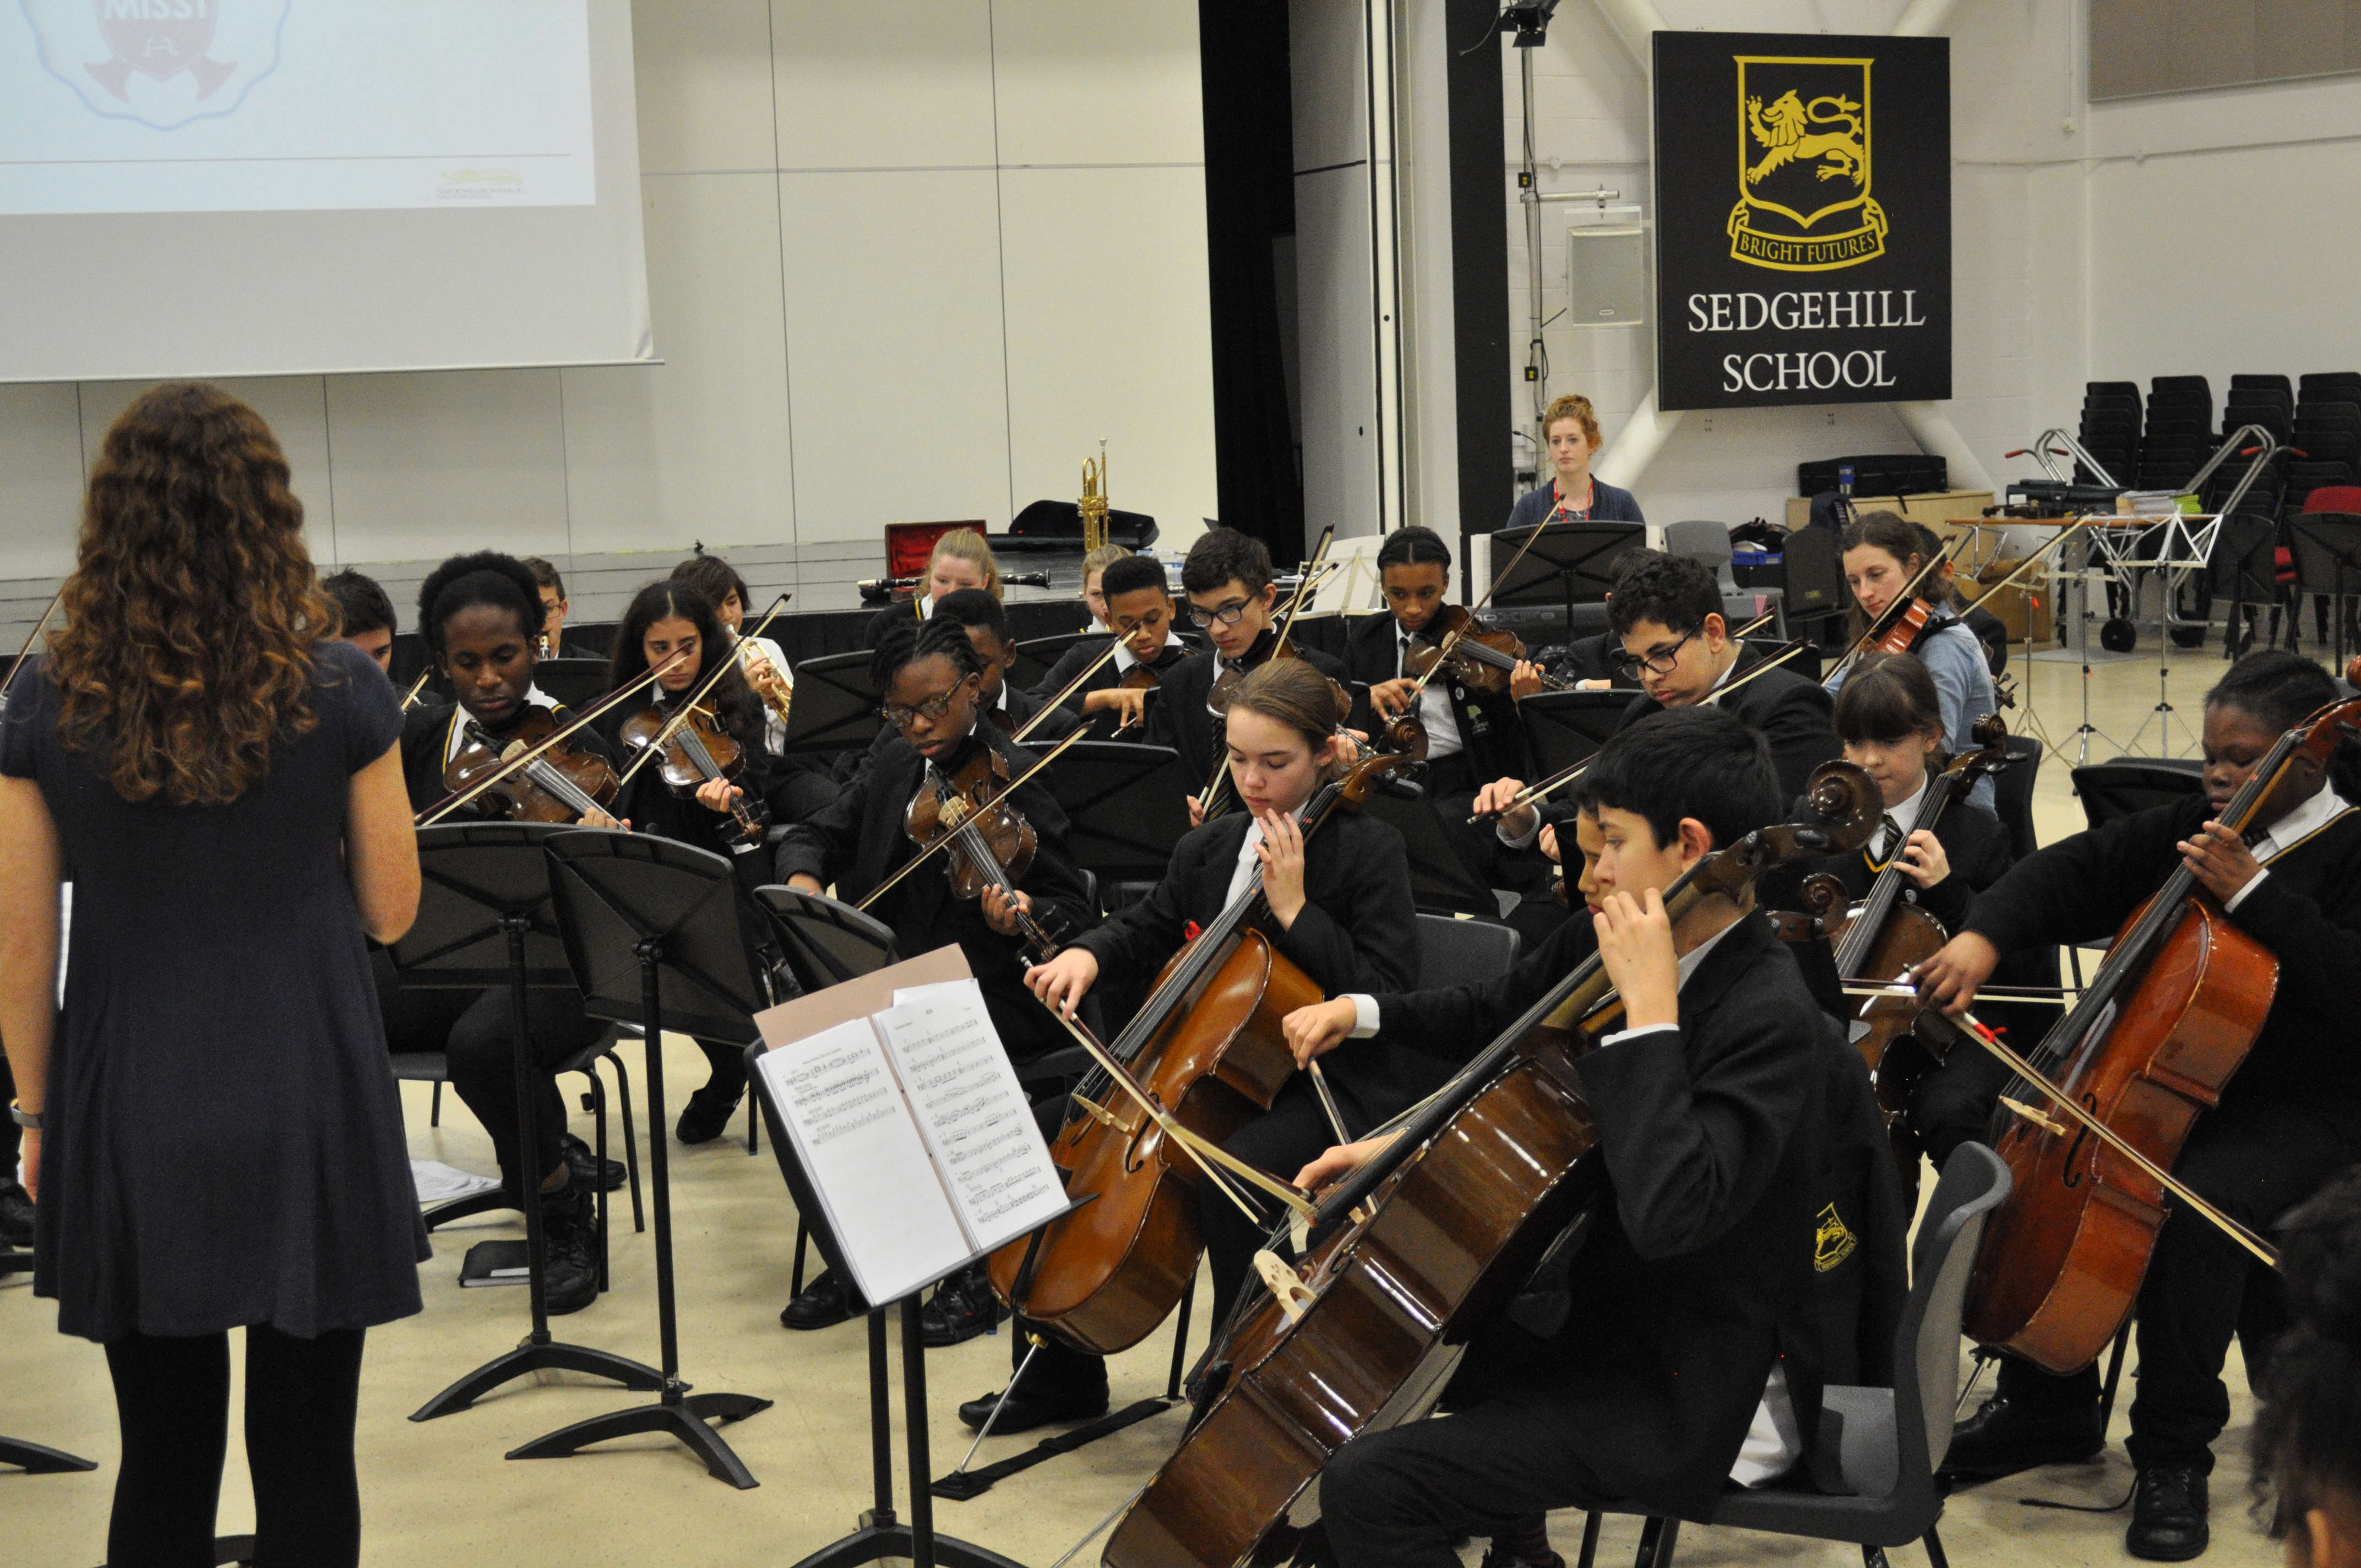 Every child has the opportunity to learn a musical instrument for free in years 7-9